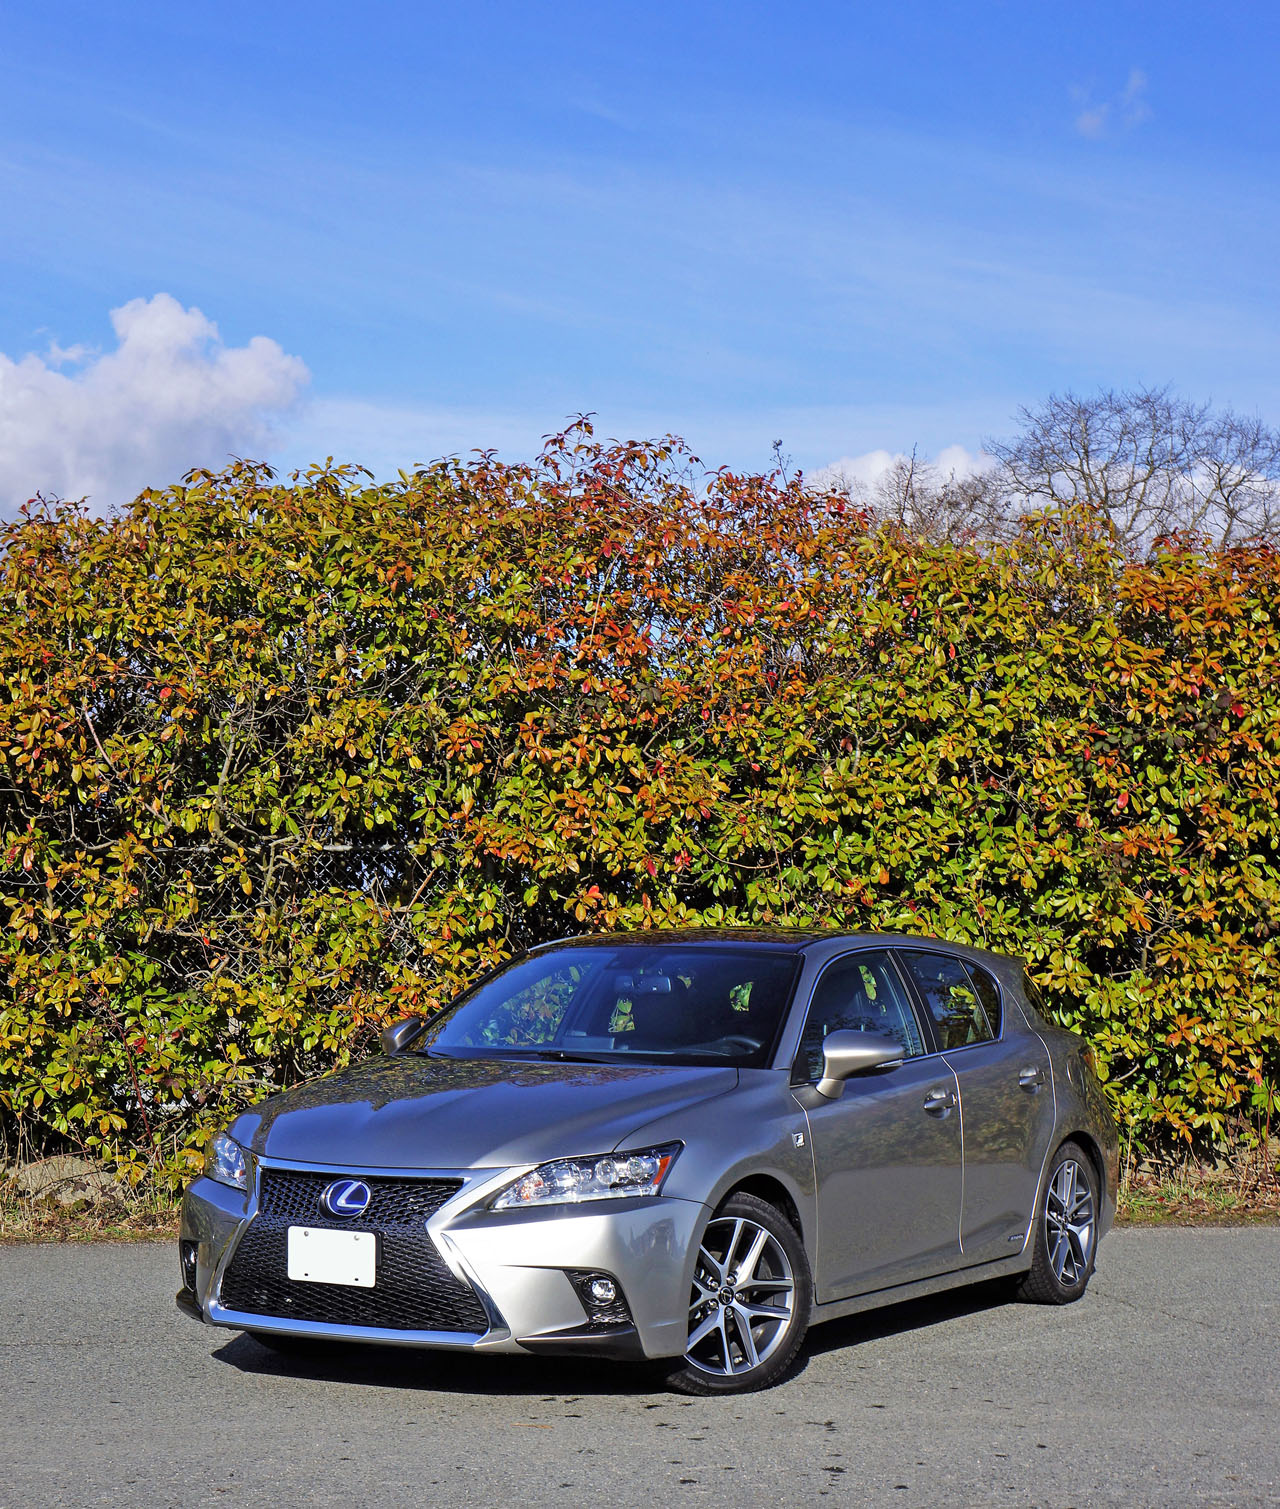 Best Lexus Sports Car: 2017 Lexus CT 200h F Sport Road Test